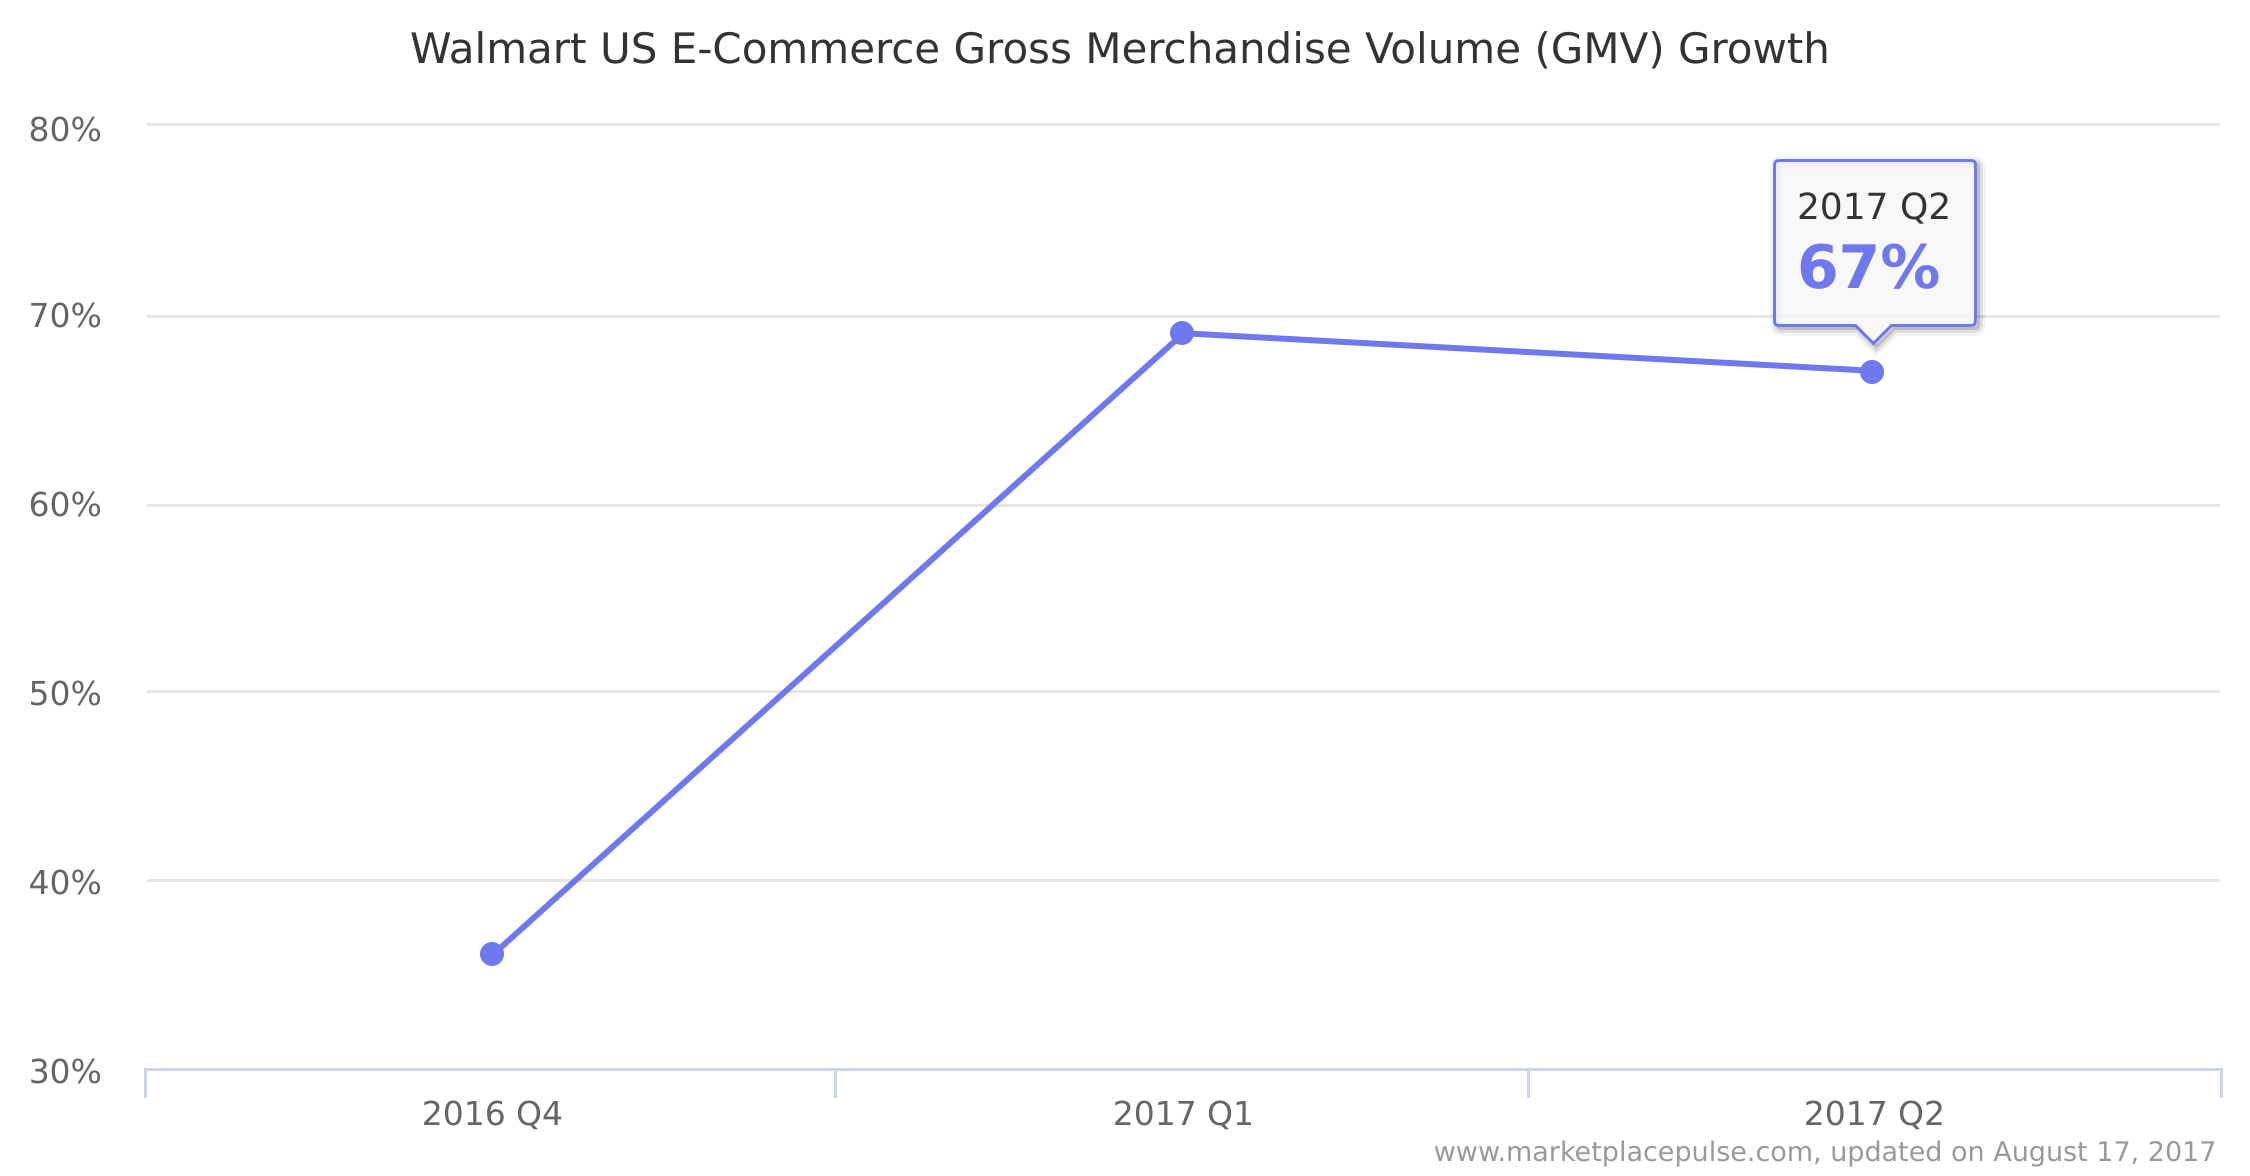 Walmart US E-Commerce Gross Merchandise Volume (GMV) Growth